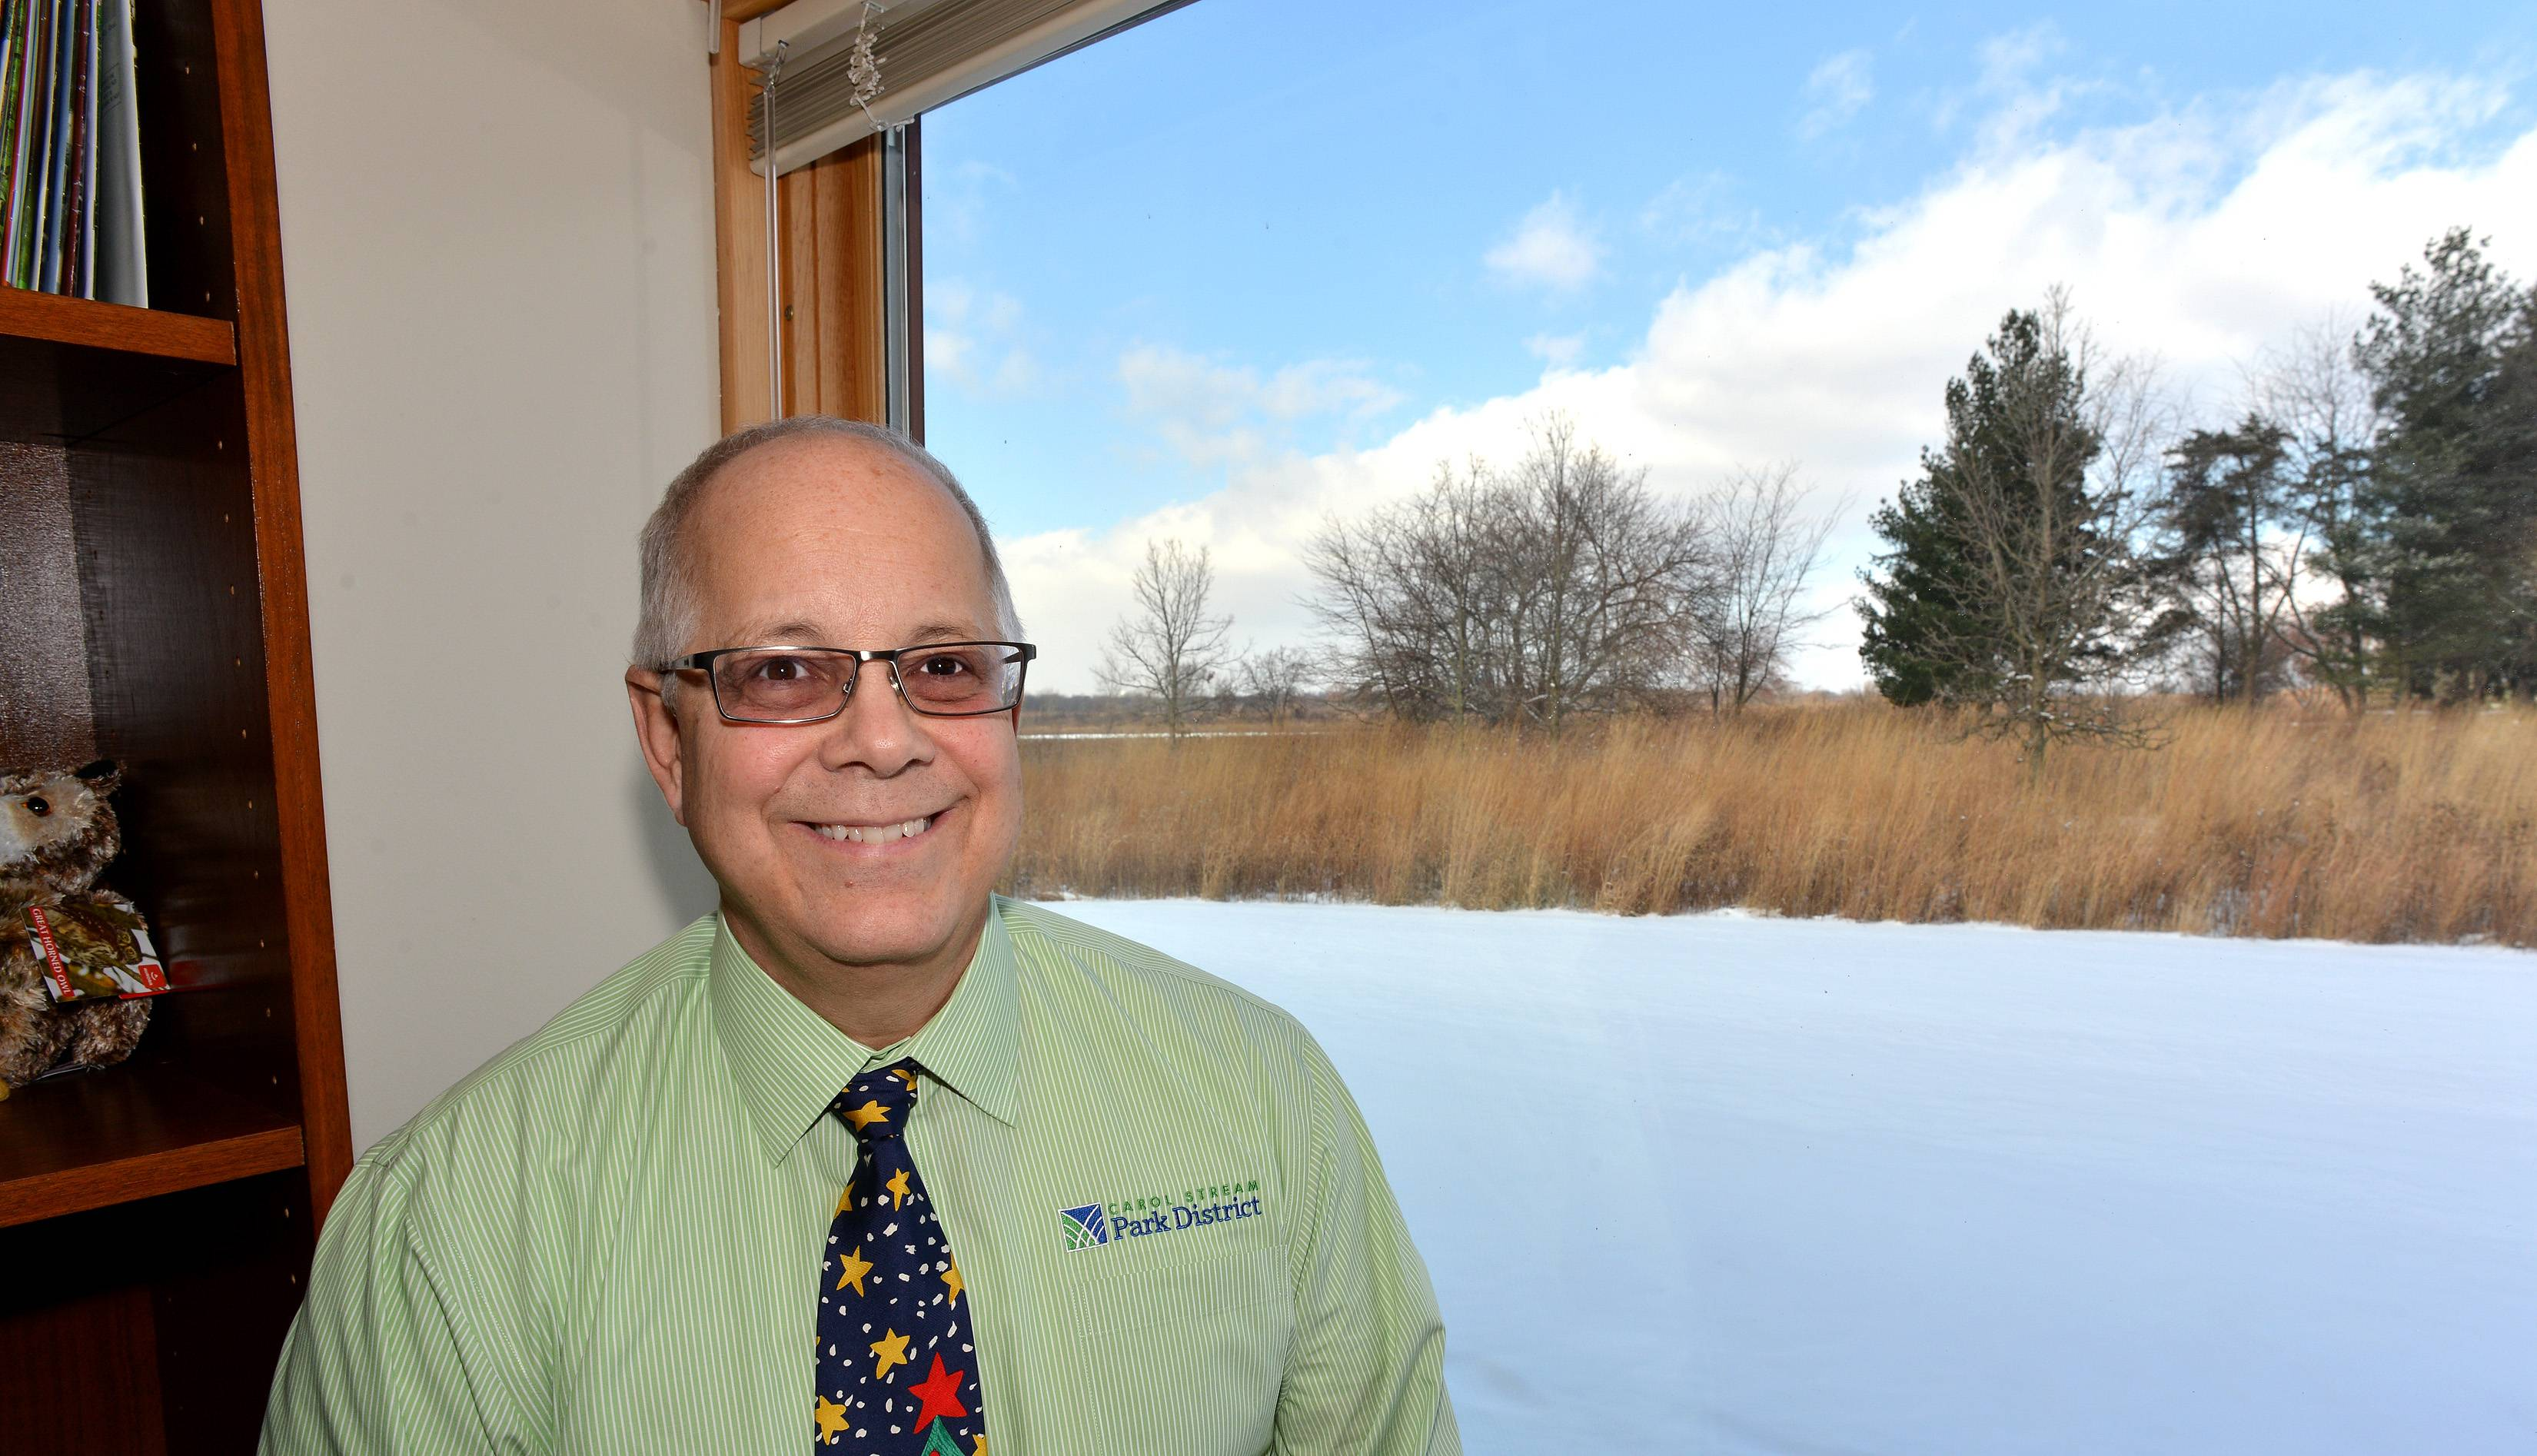 DuPage forest preserve director may be on way out